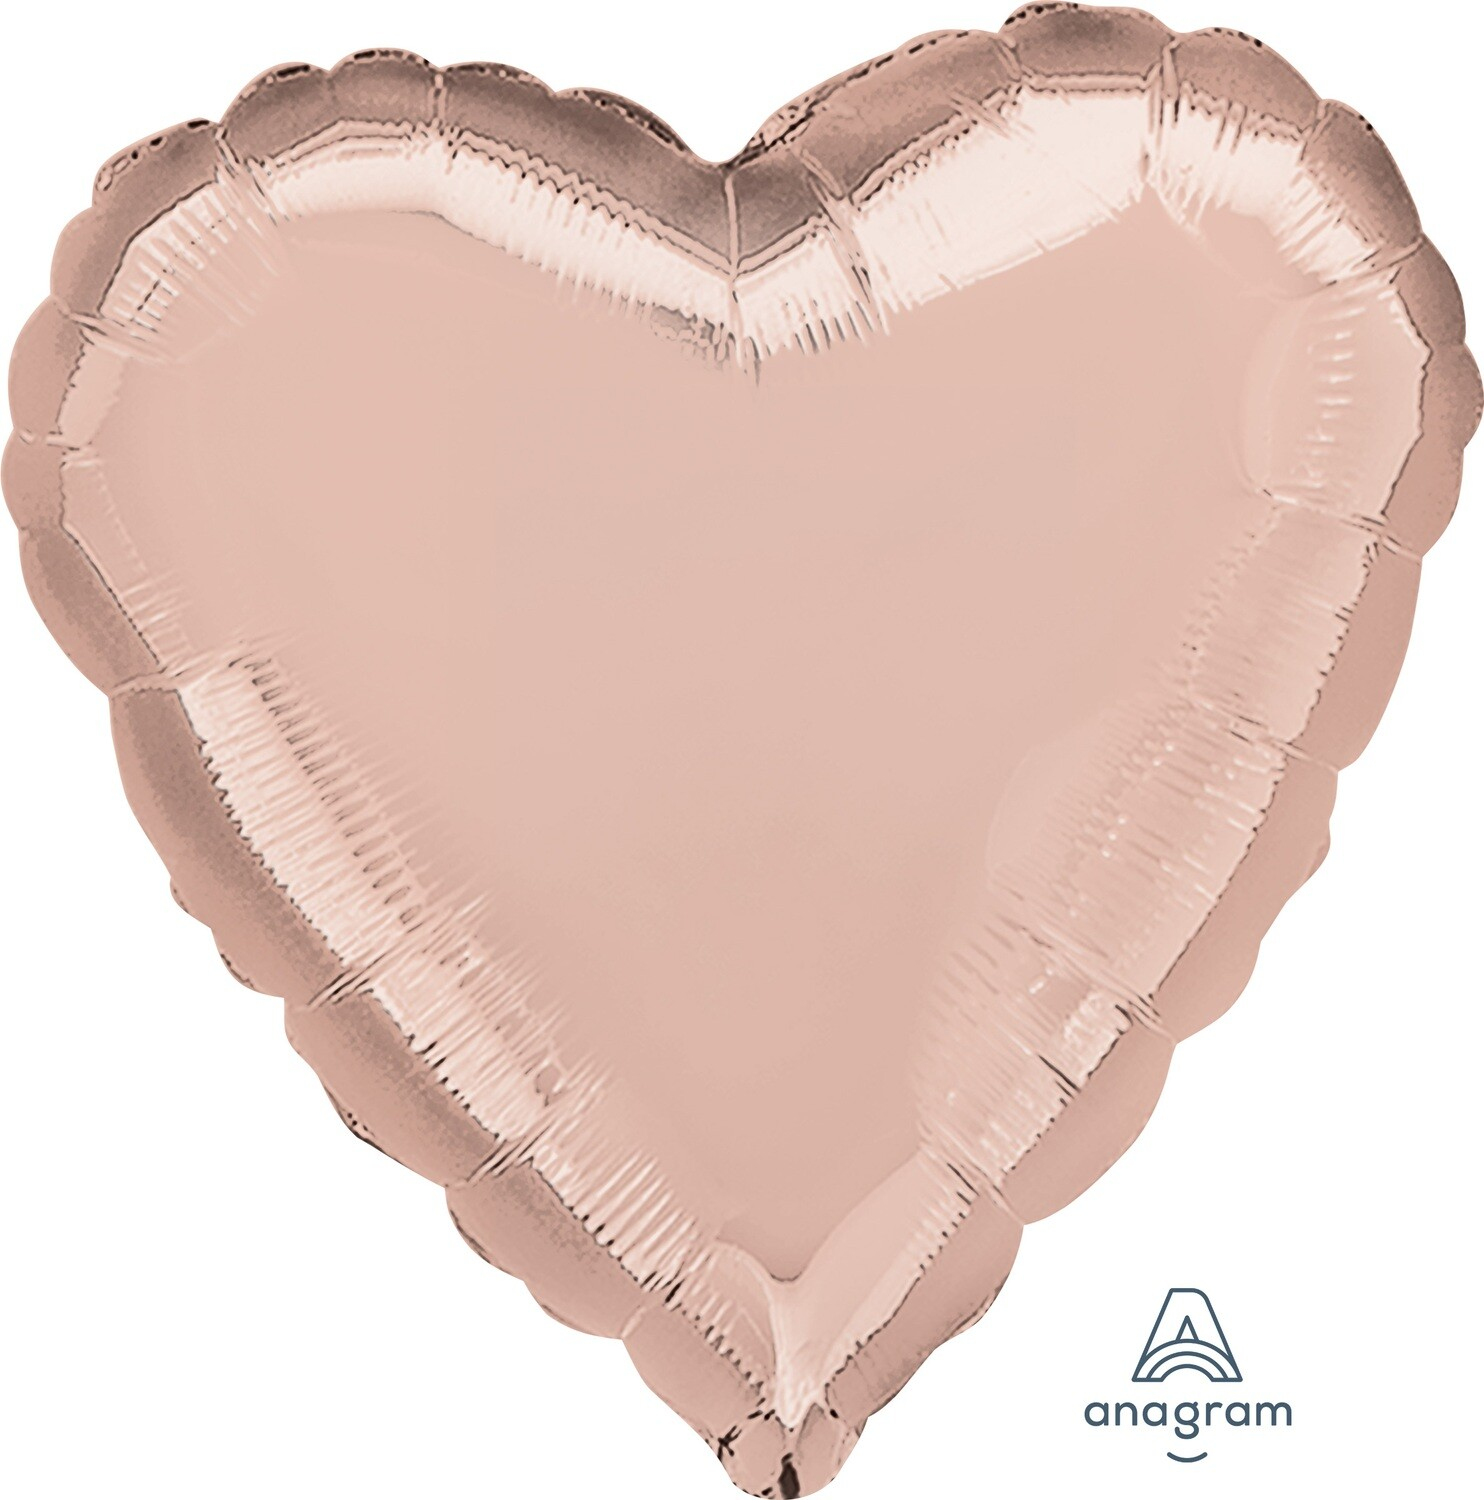 18 - METALLIC HEART SOLID ROSE GOLD